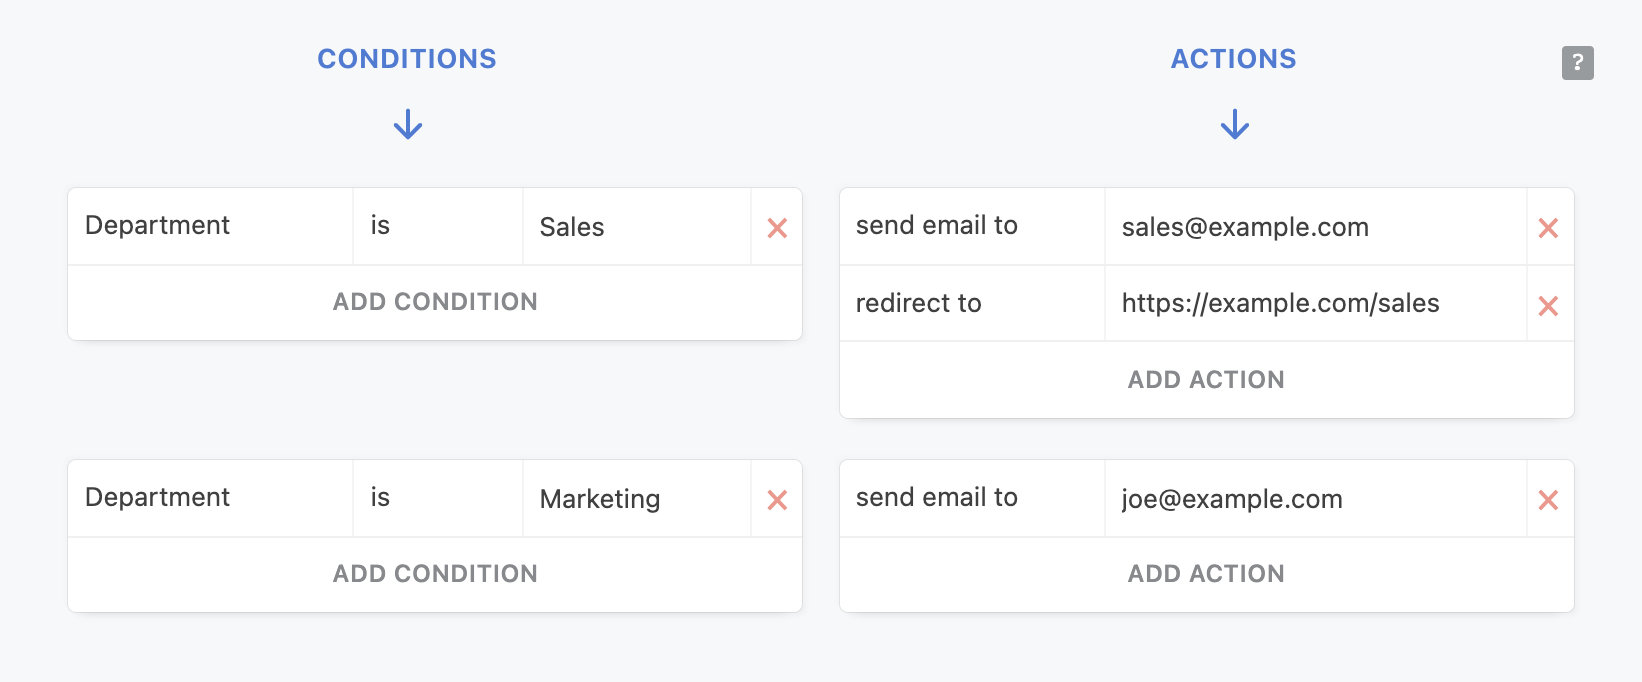 Conditional logic to send emails and redirect